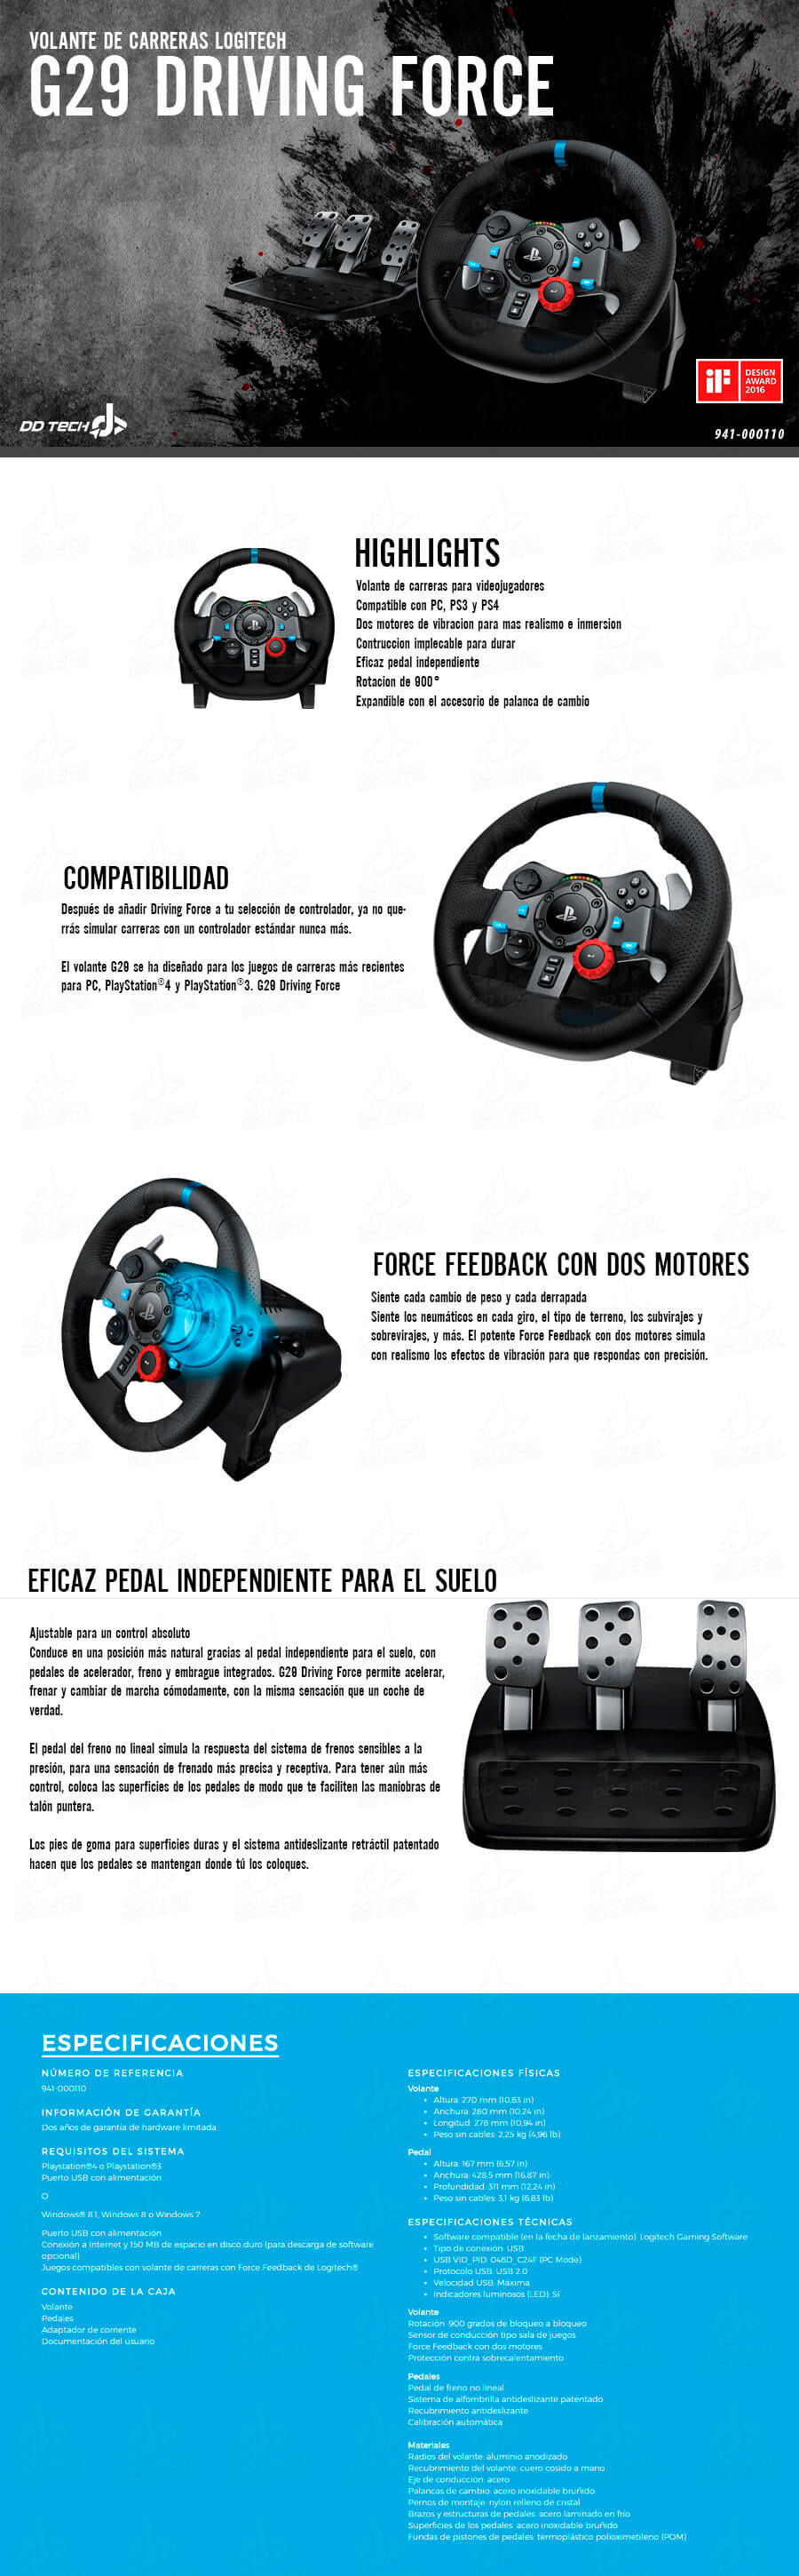 volante de carreras para ps4 logitech g29 driving force volante y pedales 941 000111 dd tech. Black Bedroom Furniture Sets. Home Design Ideas